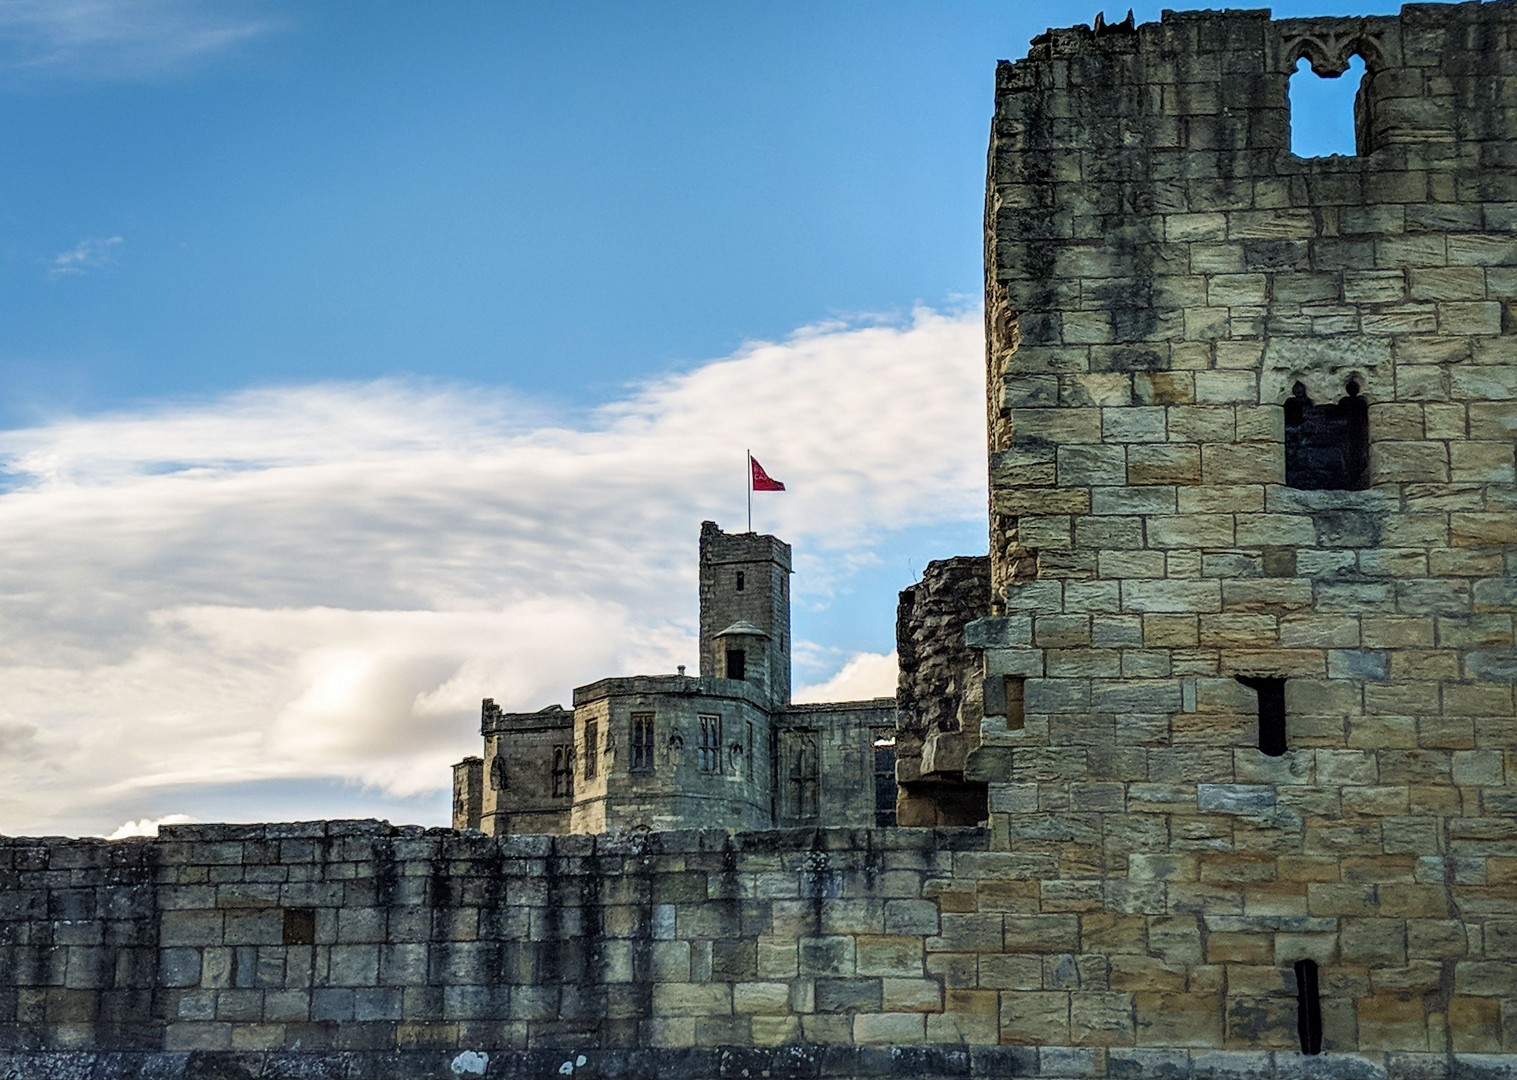 3 Warkworth Castle.jpg - UK - Coast and Castles - Supported Leisure Cycling Holiday - Leisure Cycling